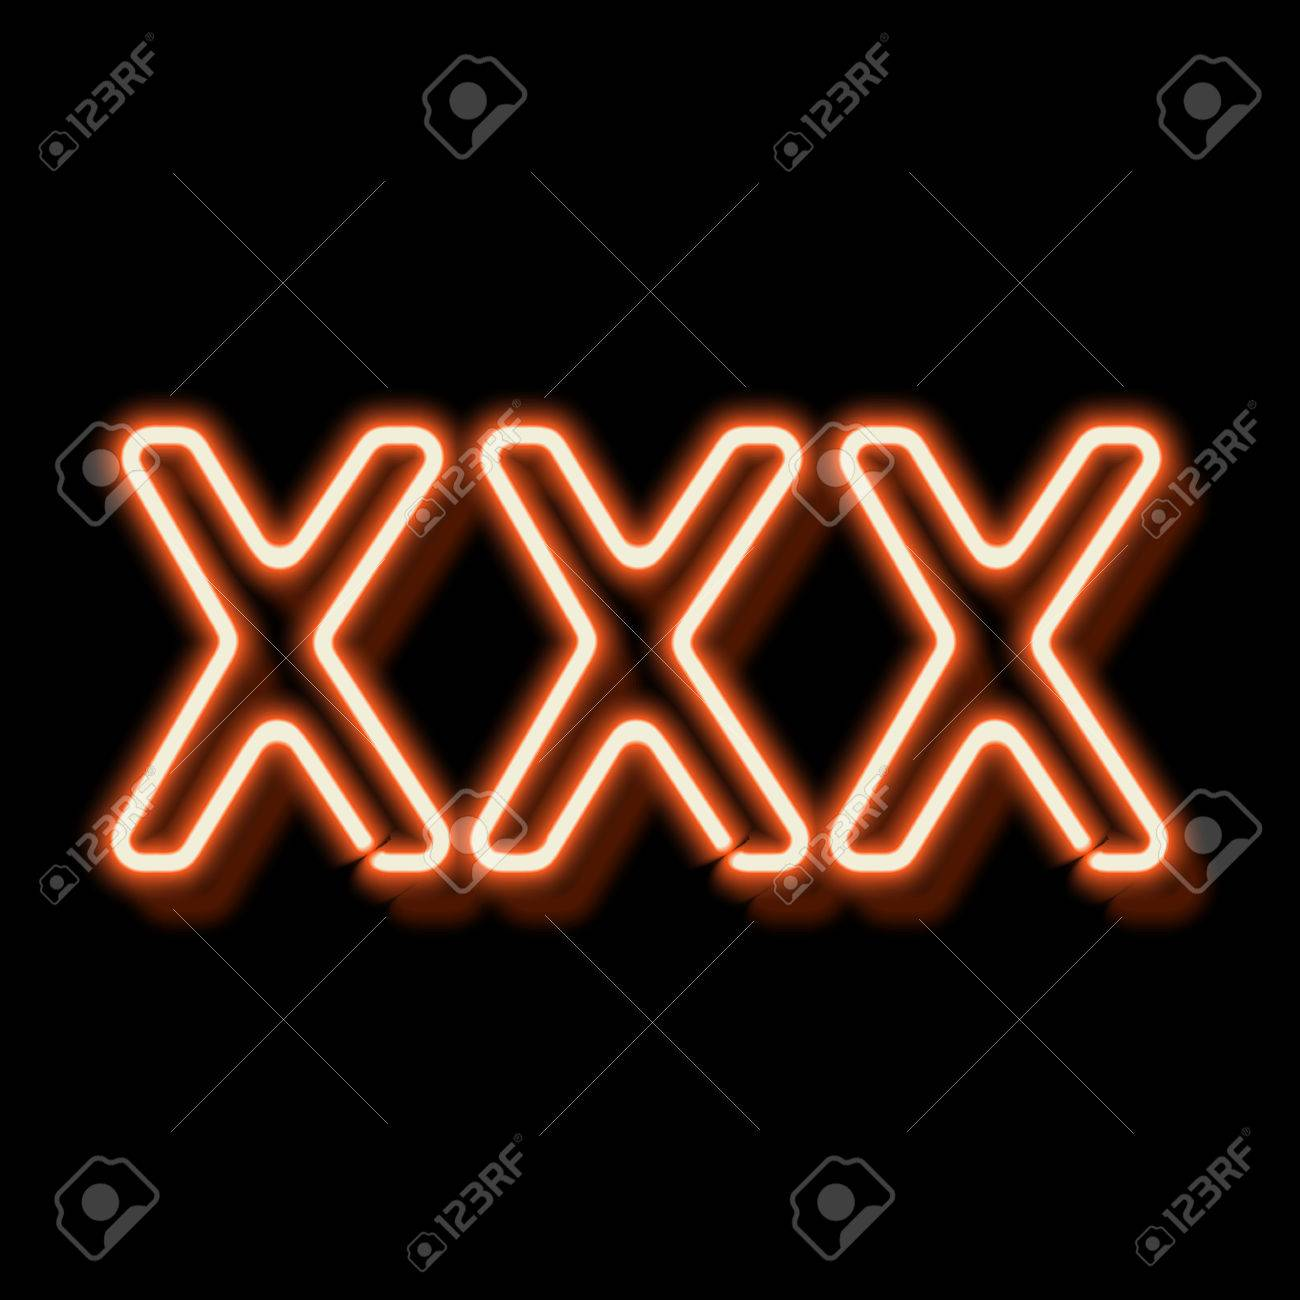 XXX Neon Sign. Lamp Symbol 18. Burning Erotic Sign. Vintage Electric ...